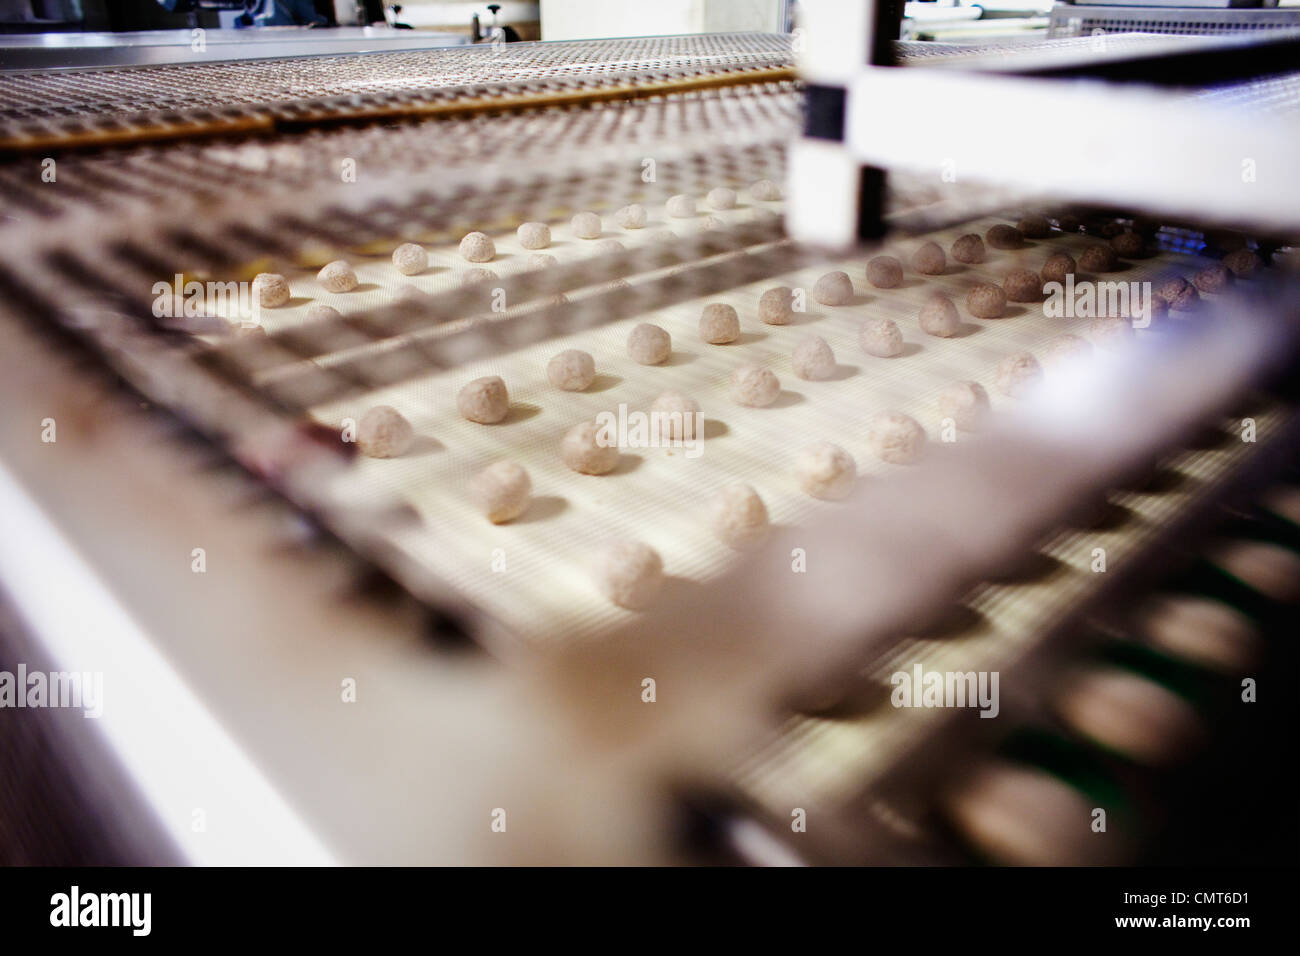 View of conveyor belt - Stock Image